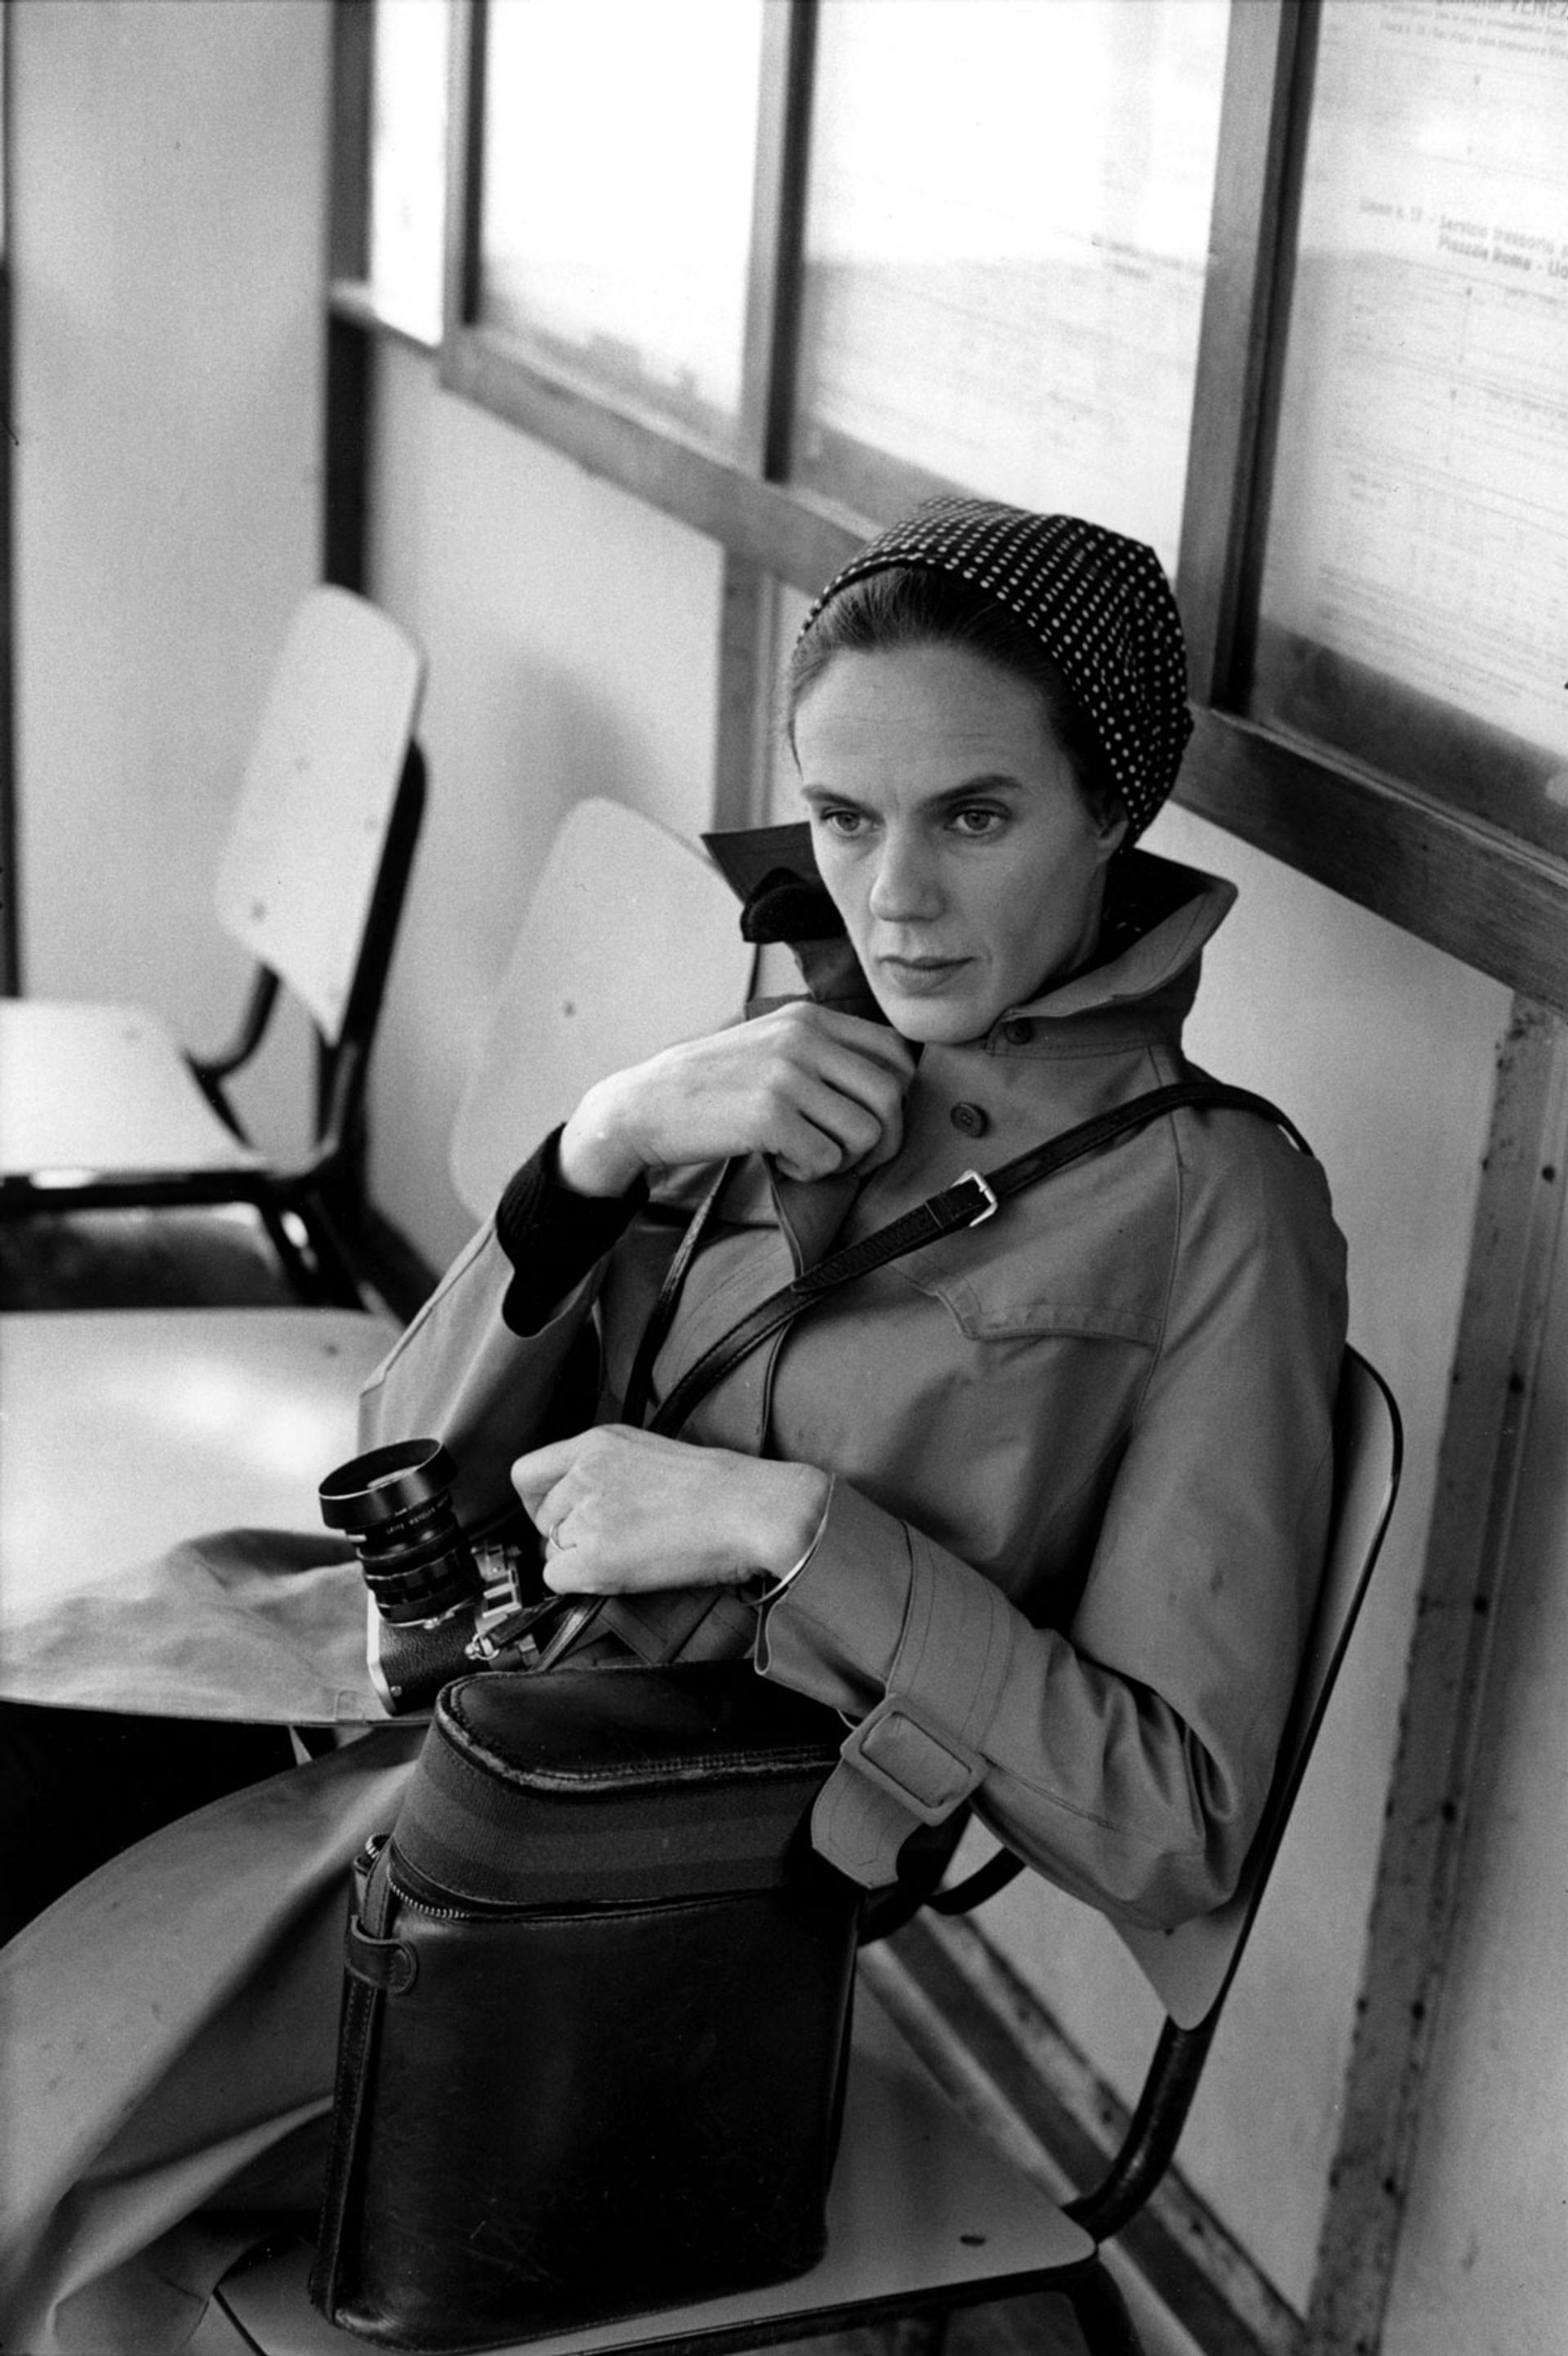 Martine Franck, photographed by Cartier-Bresson, set up their foundation in 2002 © Henri Cartier-Bresson/Magnum Photos